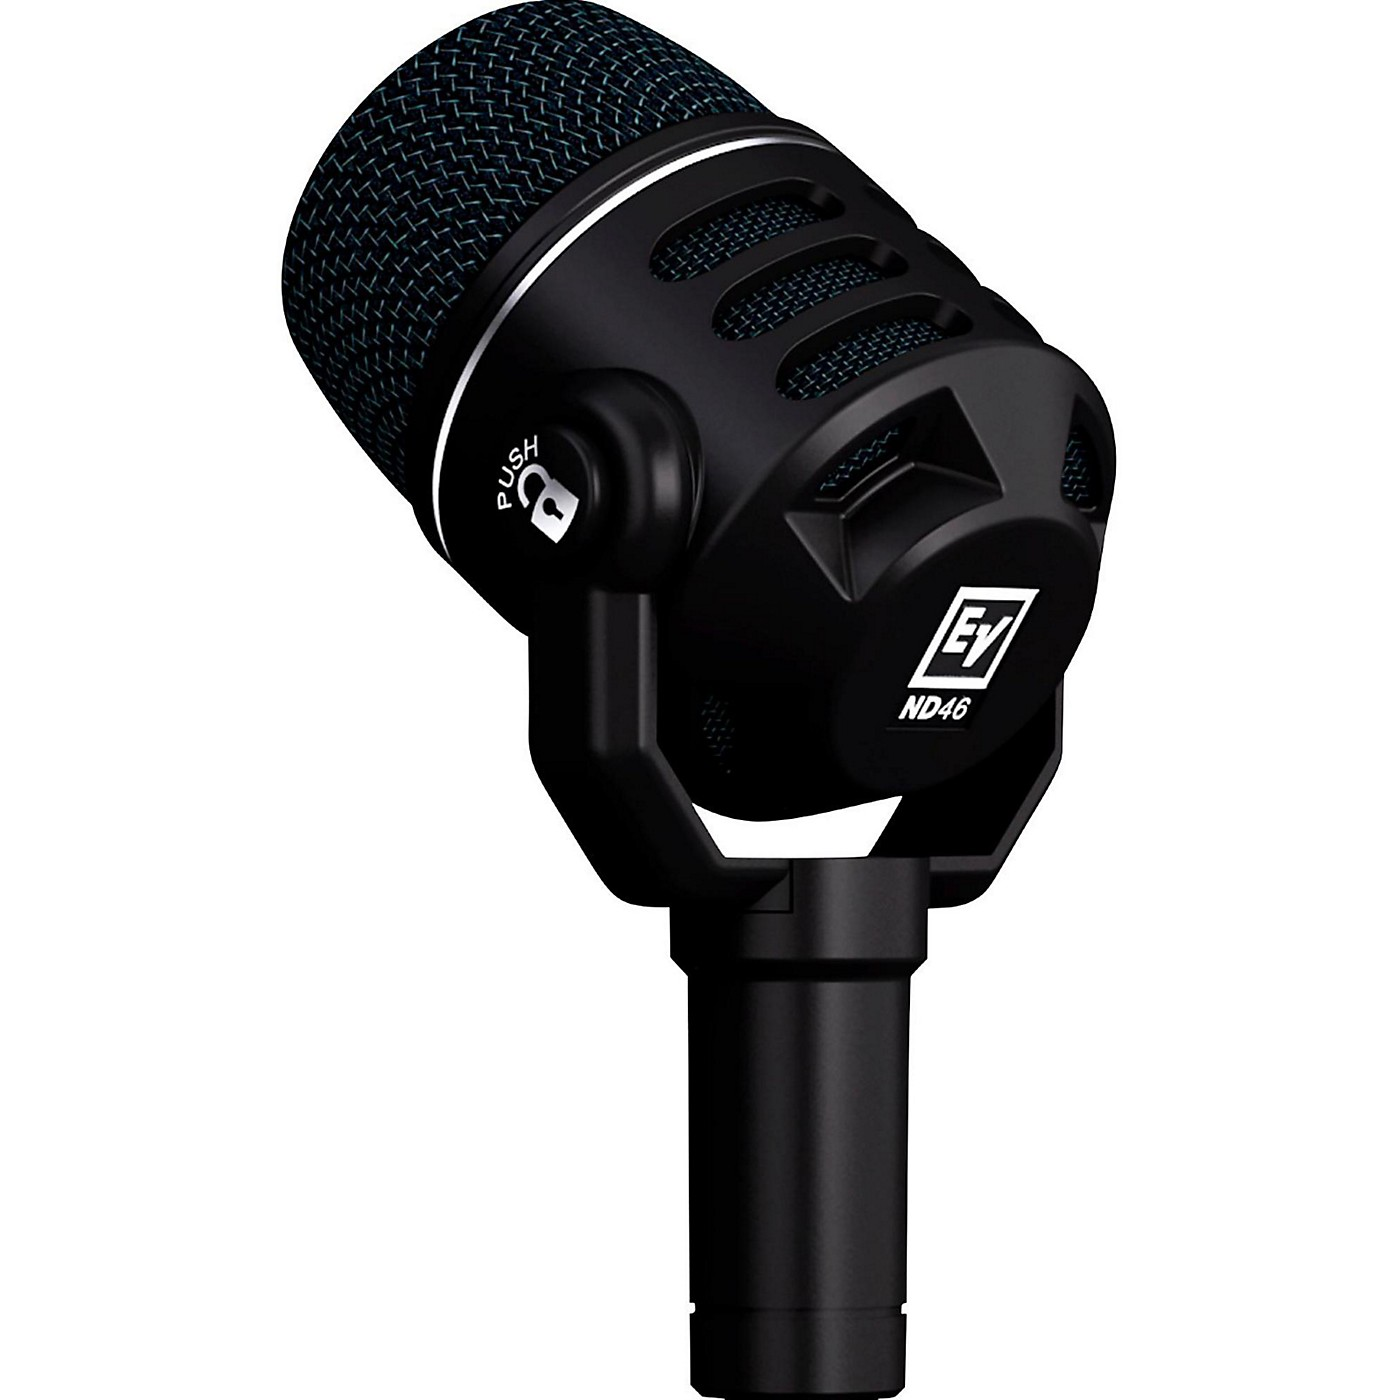 Electro-Voice ND46 Dynamic Supercardioid Instrument Microphone thumbnail